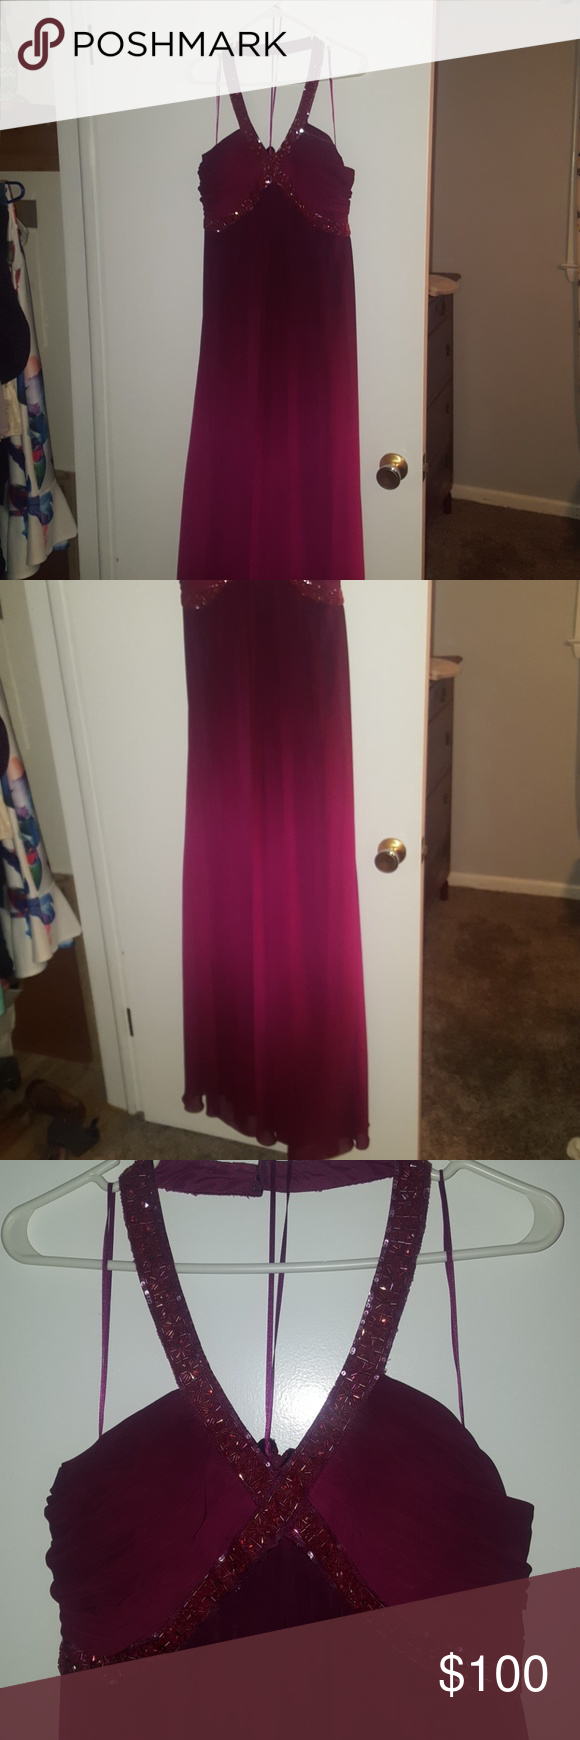 Lovely ombre formal dress Maroon ombre halter dress with beading.  Worn once then I gained weight.  My gain is your gain!  The bottom gently drapes from the bust, covering any little flaws around the tummy. JS Boutique Dresses Prom